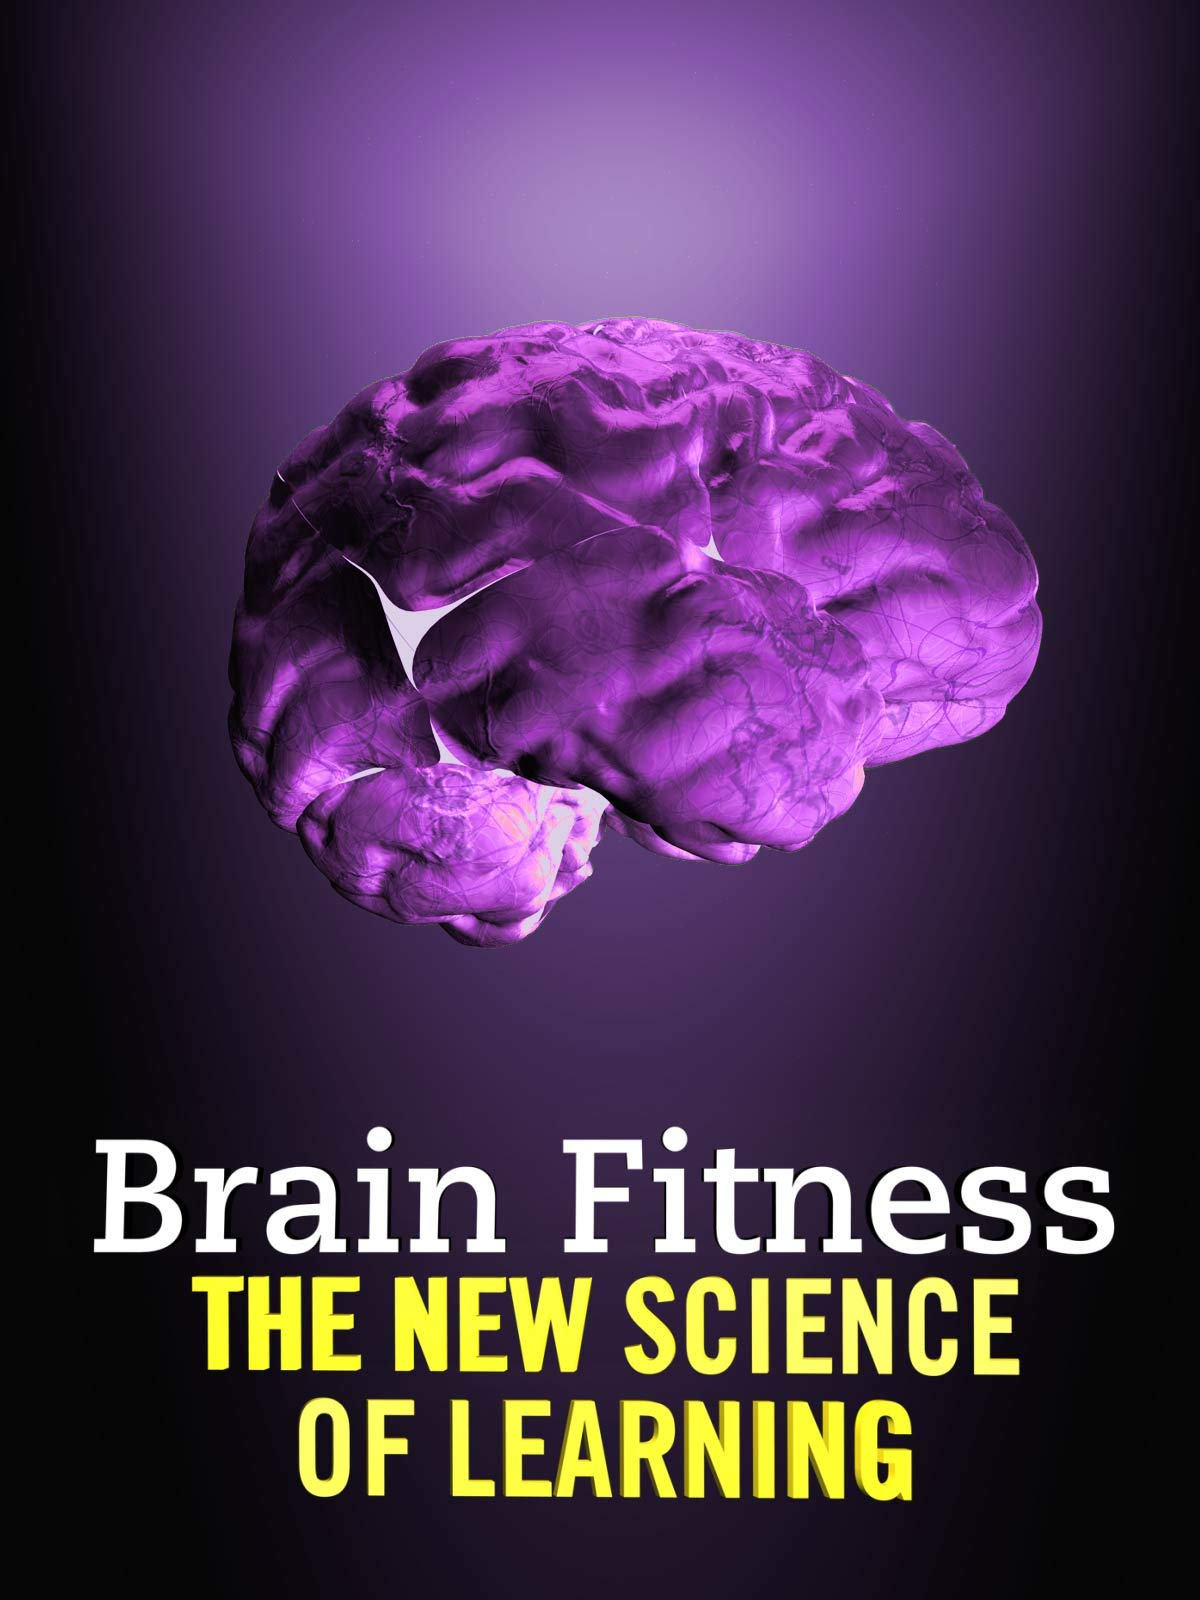 Brain Fitness: The New Science of Learning